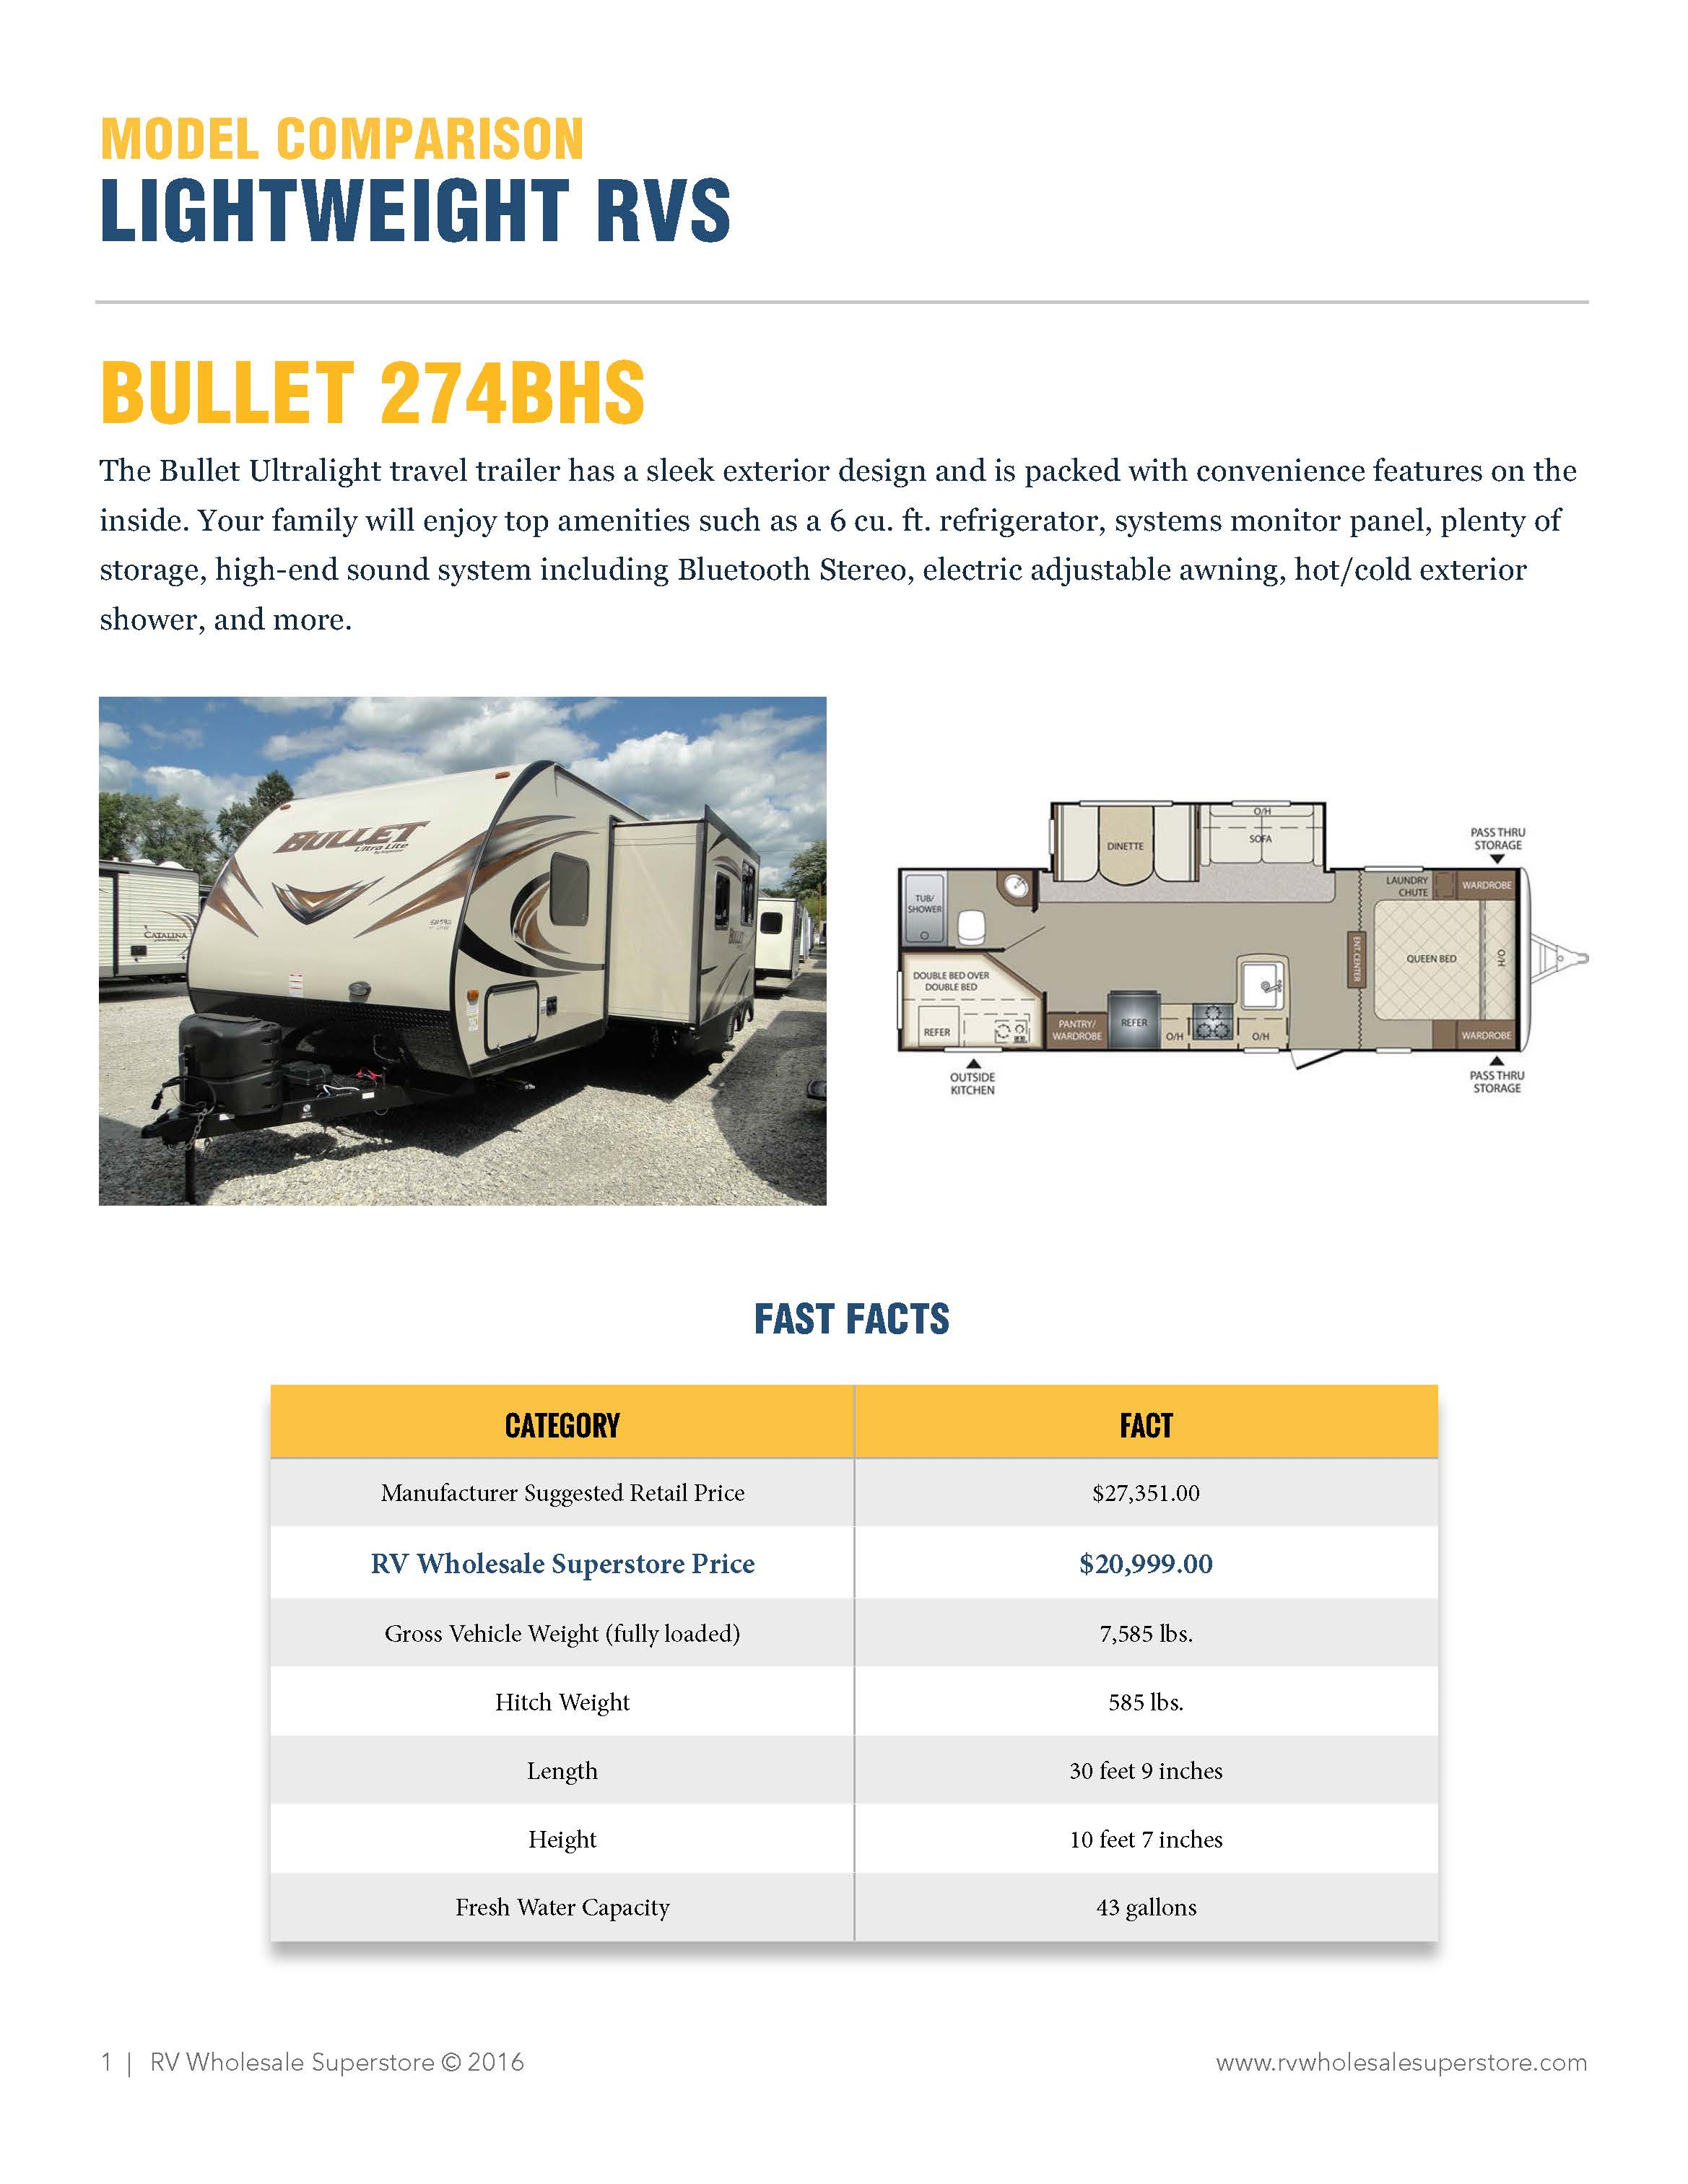 Lightweight-RV-2-page-Comparison-Guide_Page_1